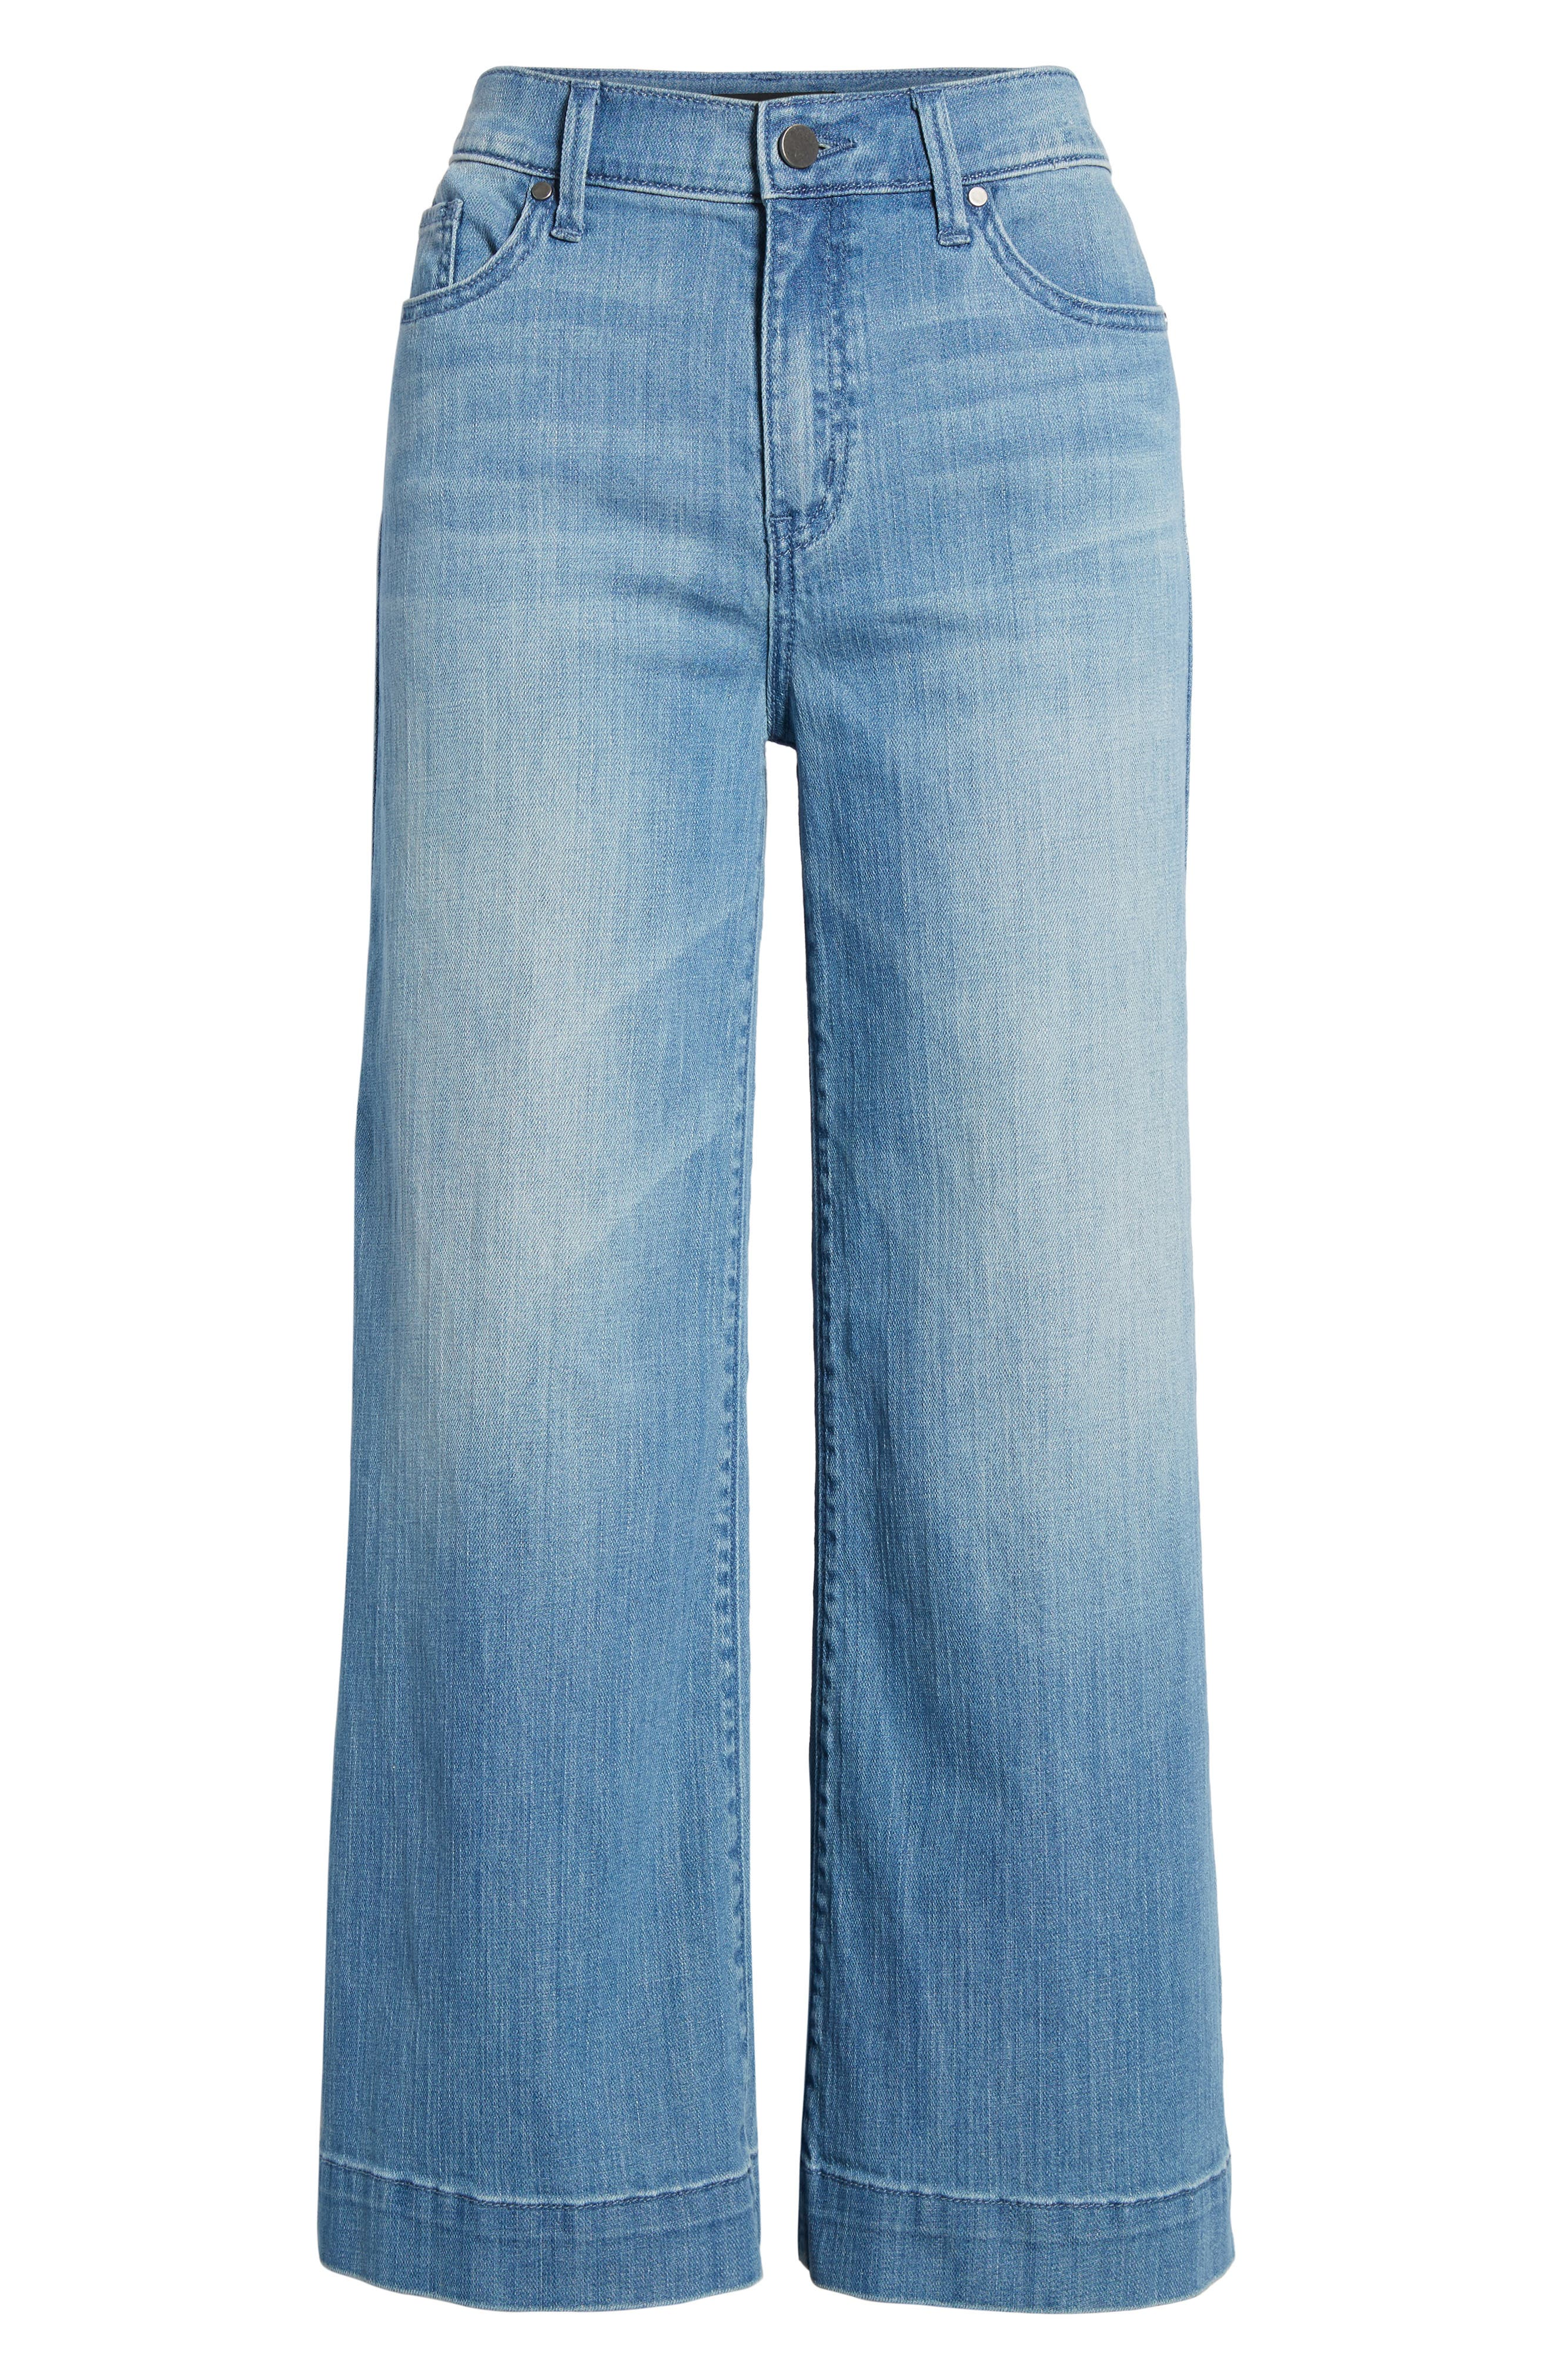 Wide Leg Cropped Jeans,                             Alternate thumbnail 8, color,                             Modern Wash